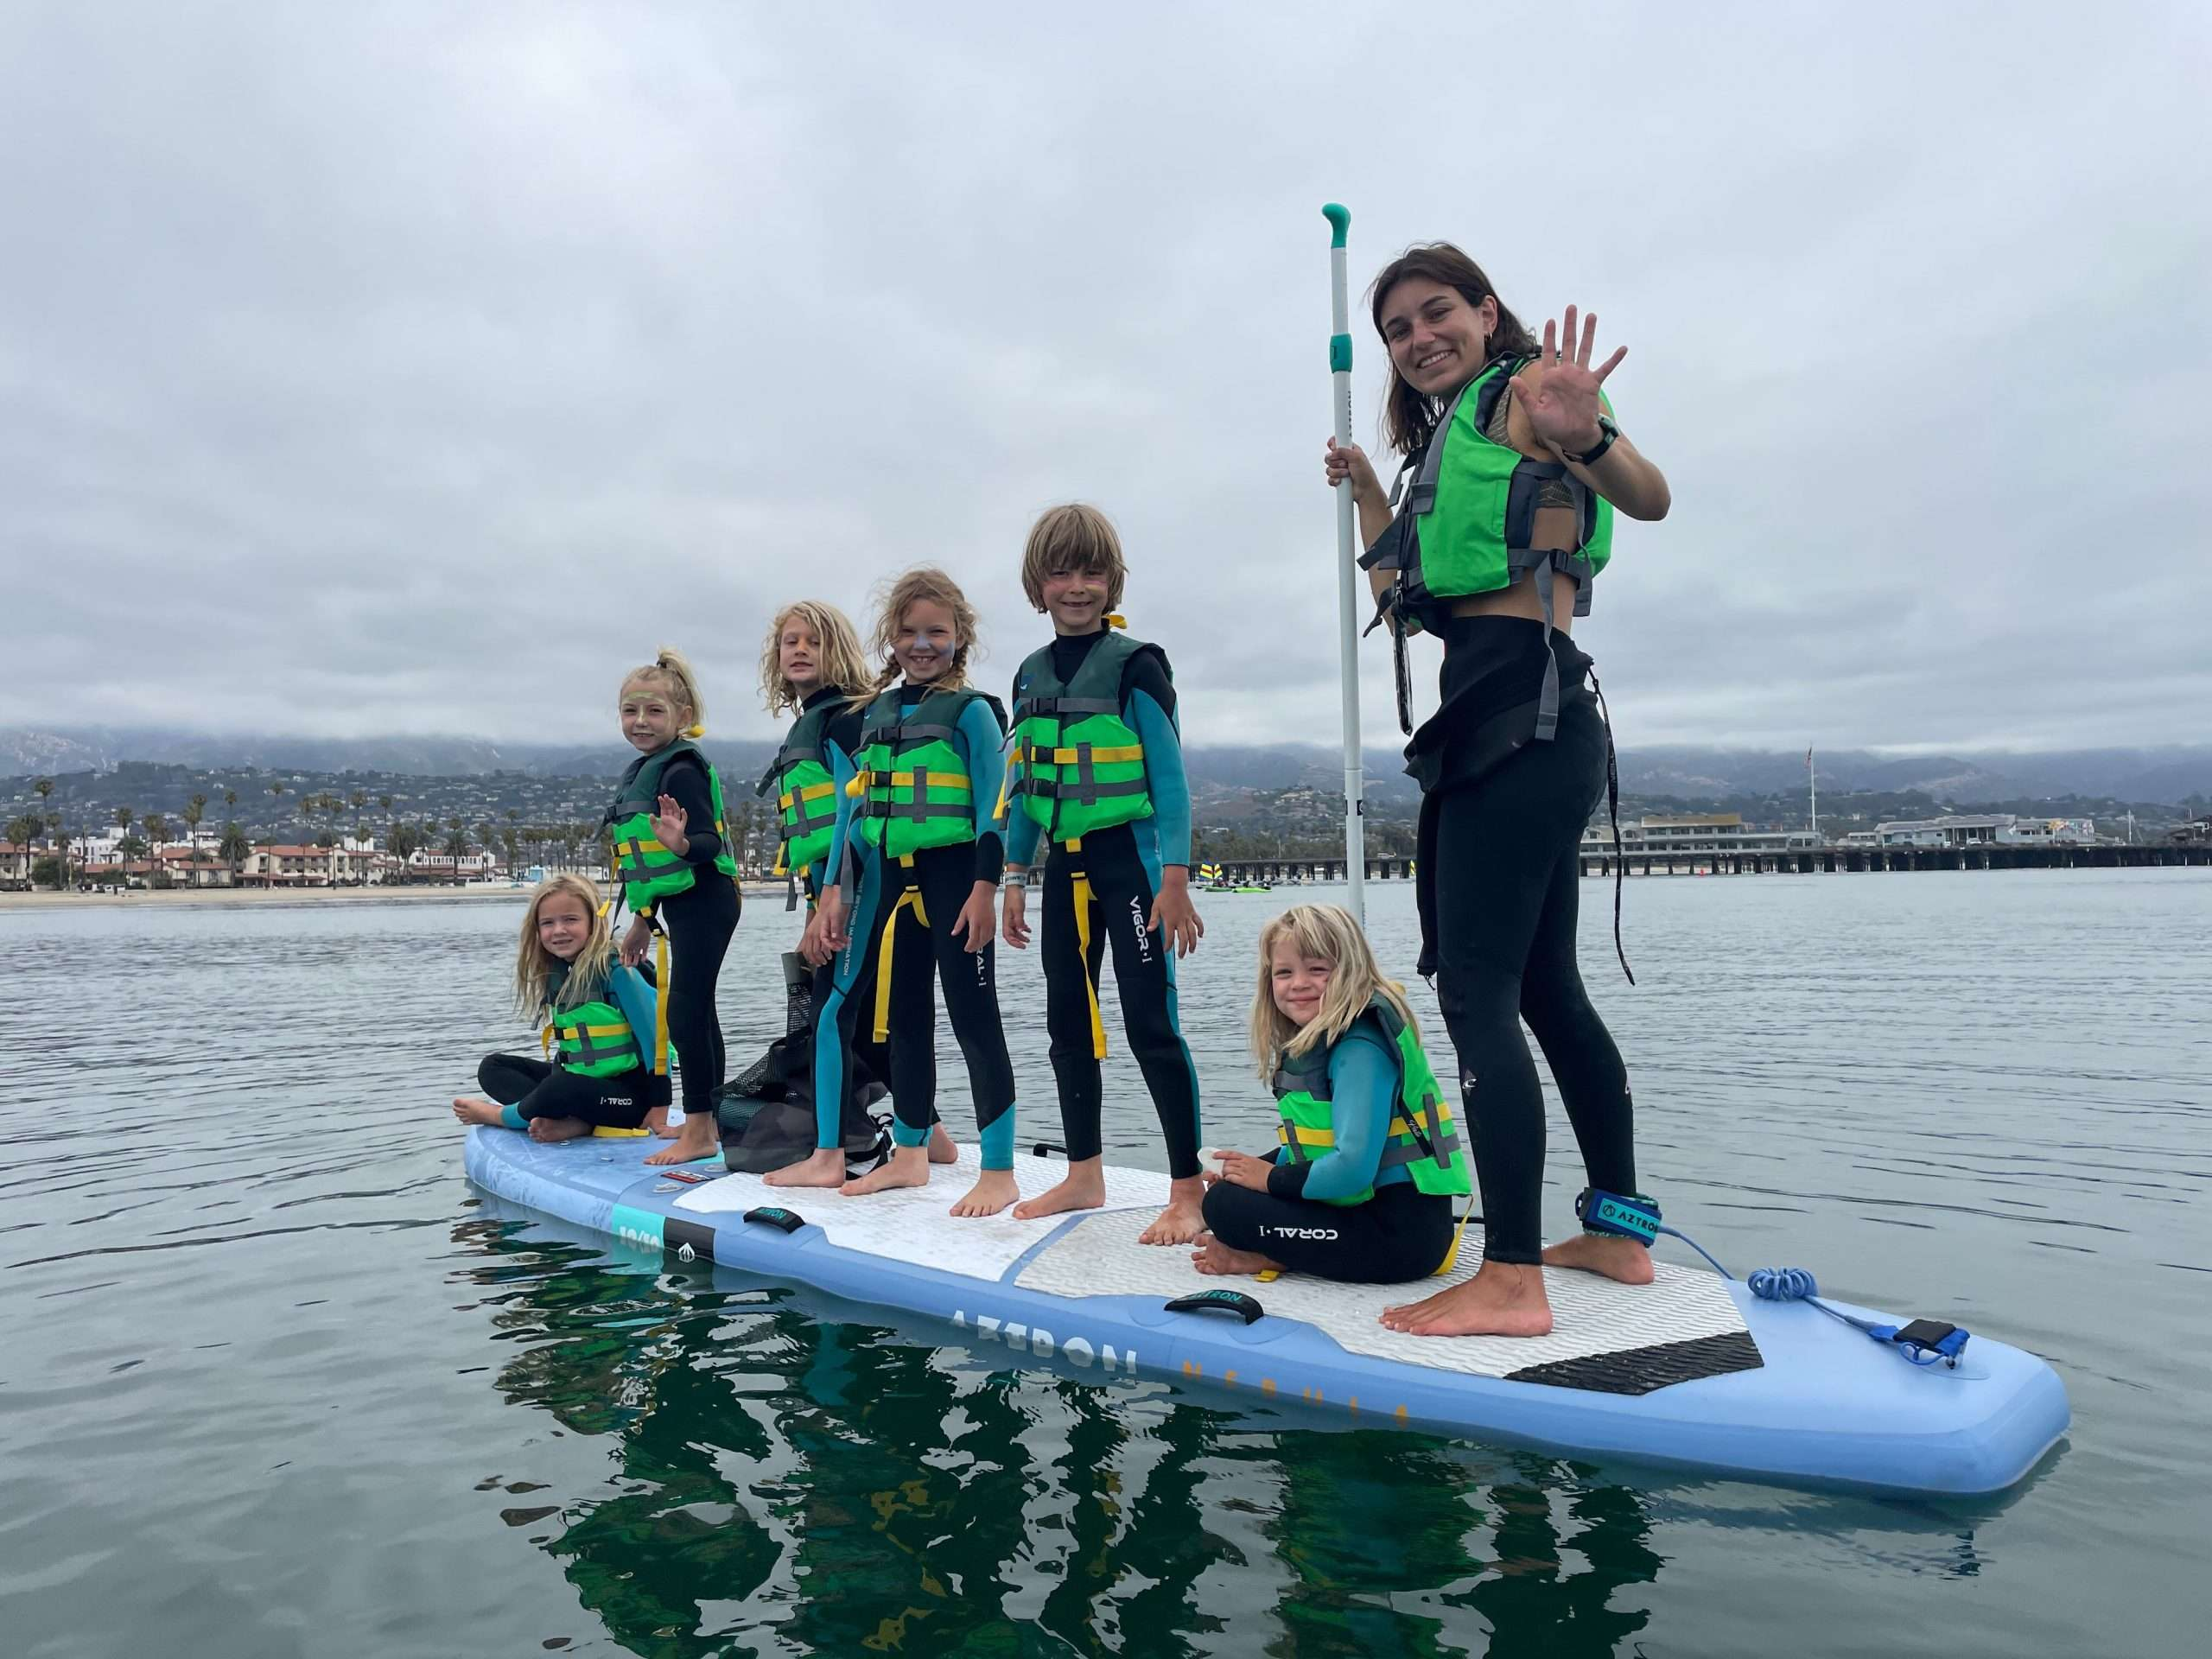 7 kids out on a standup paddle board from Santa Barbara Paddle Sports